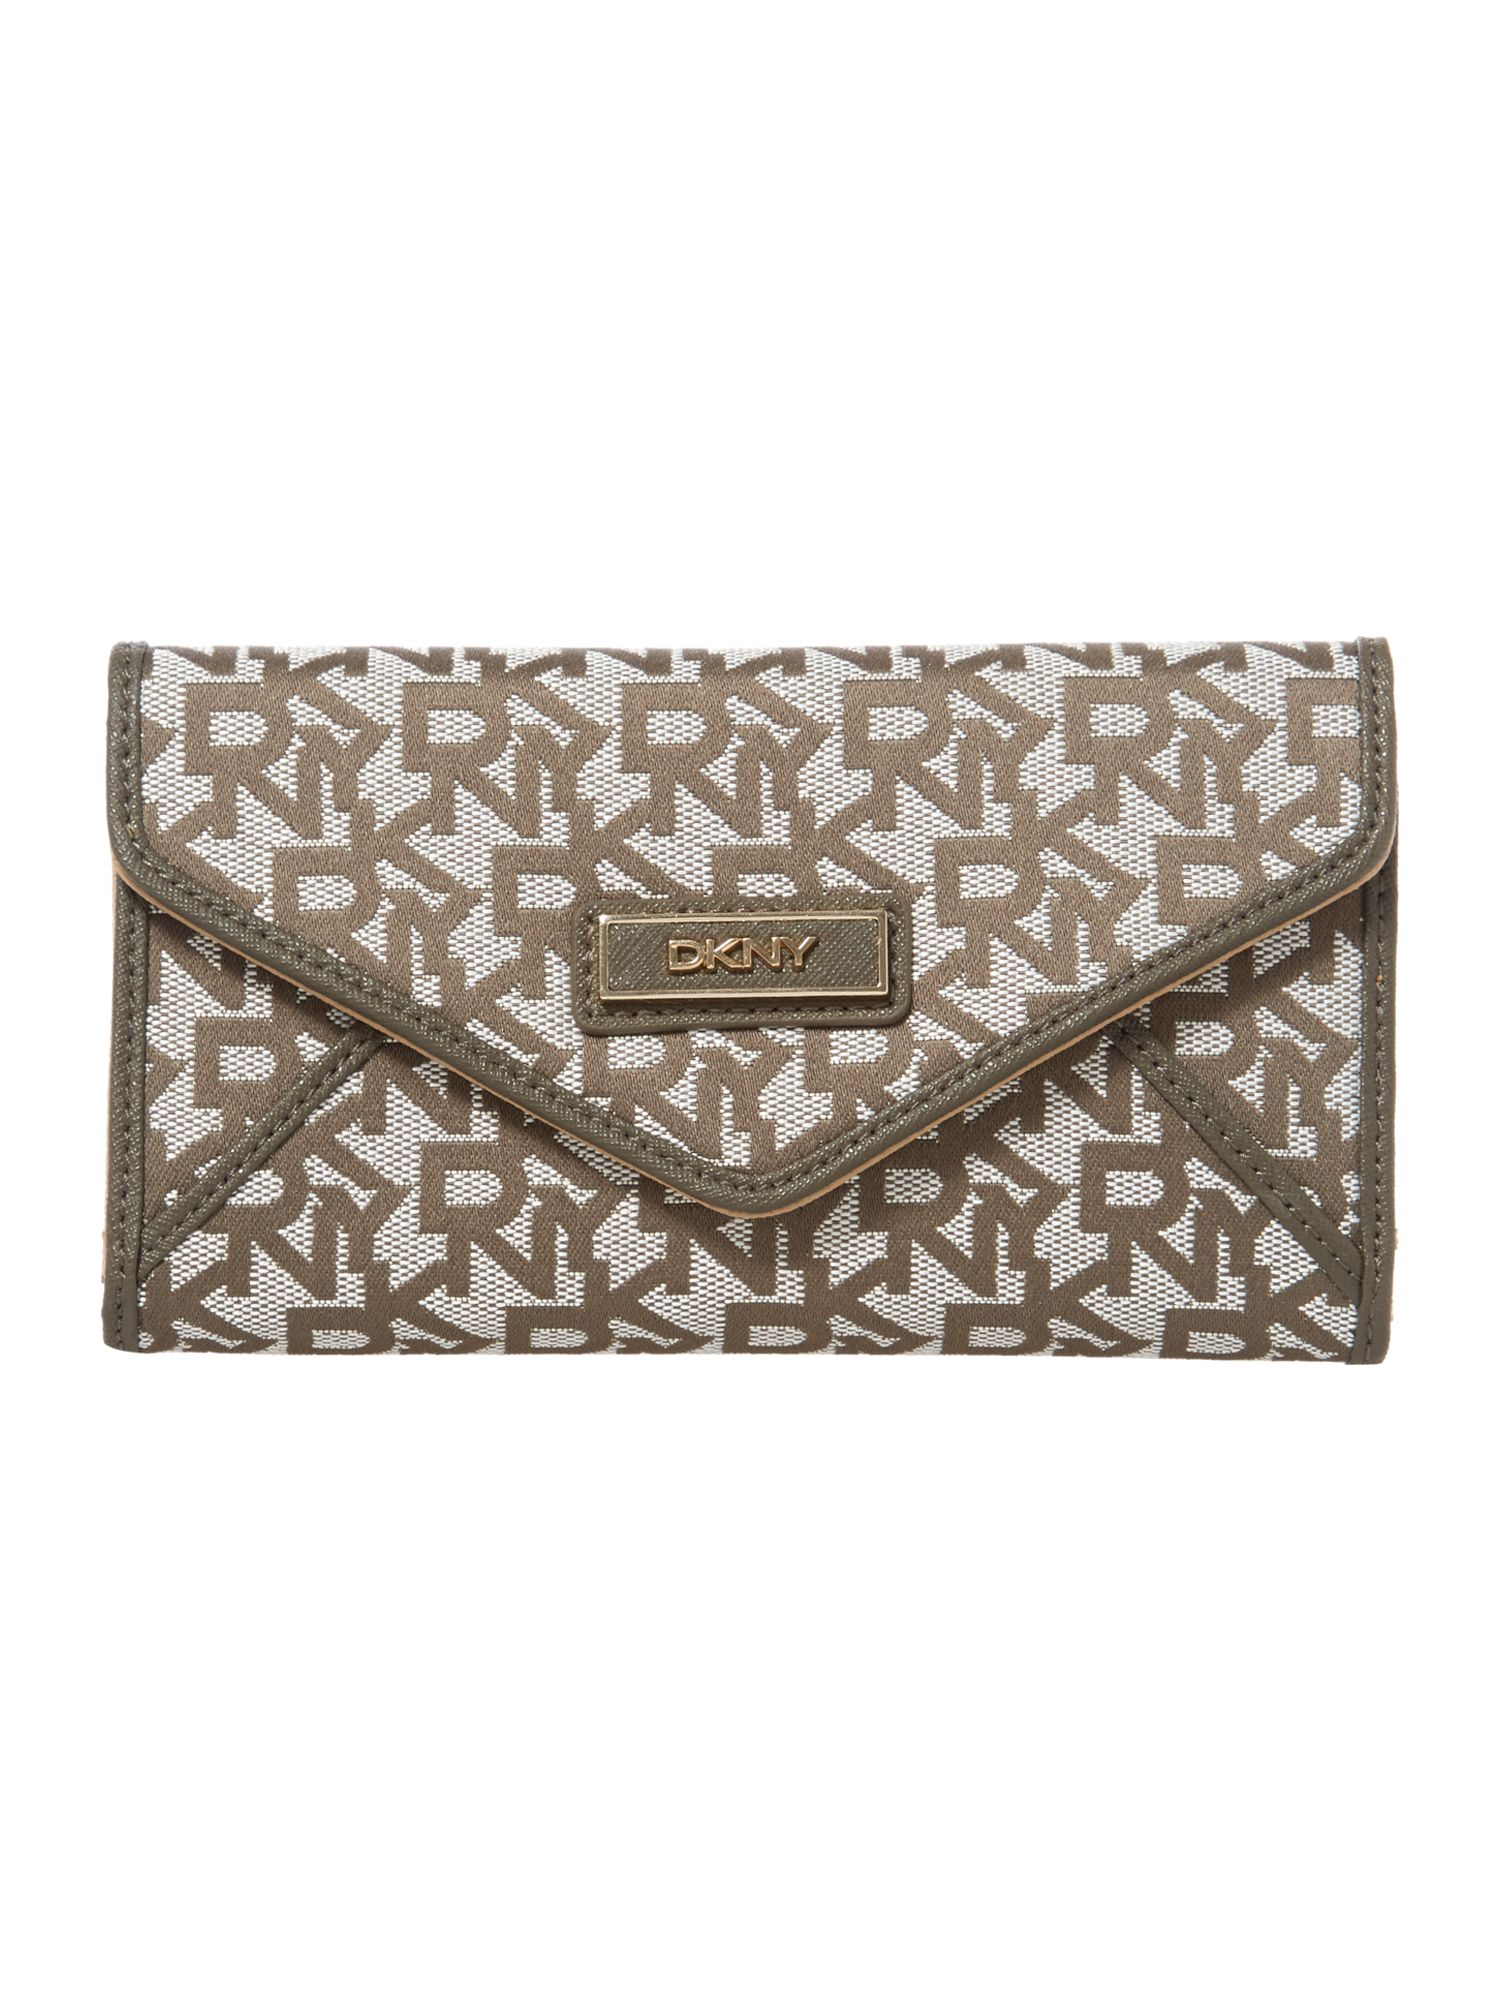 Saffiano grey large envelope purse